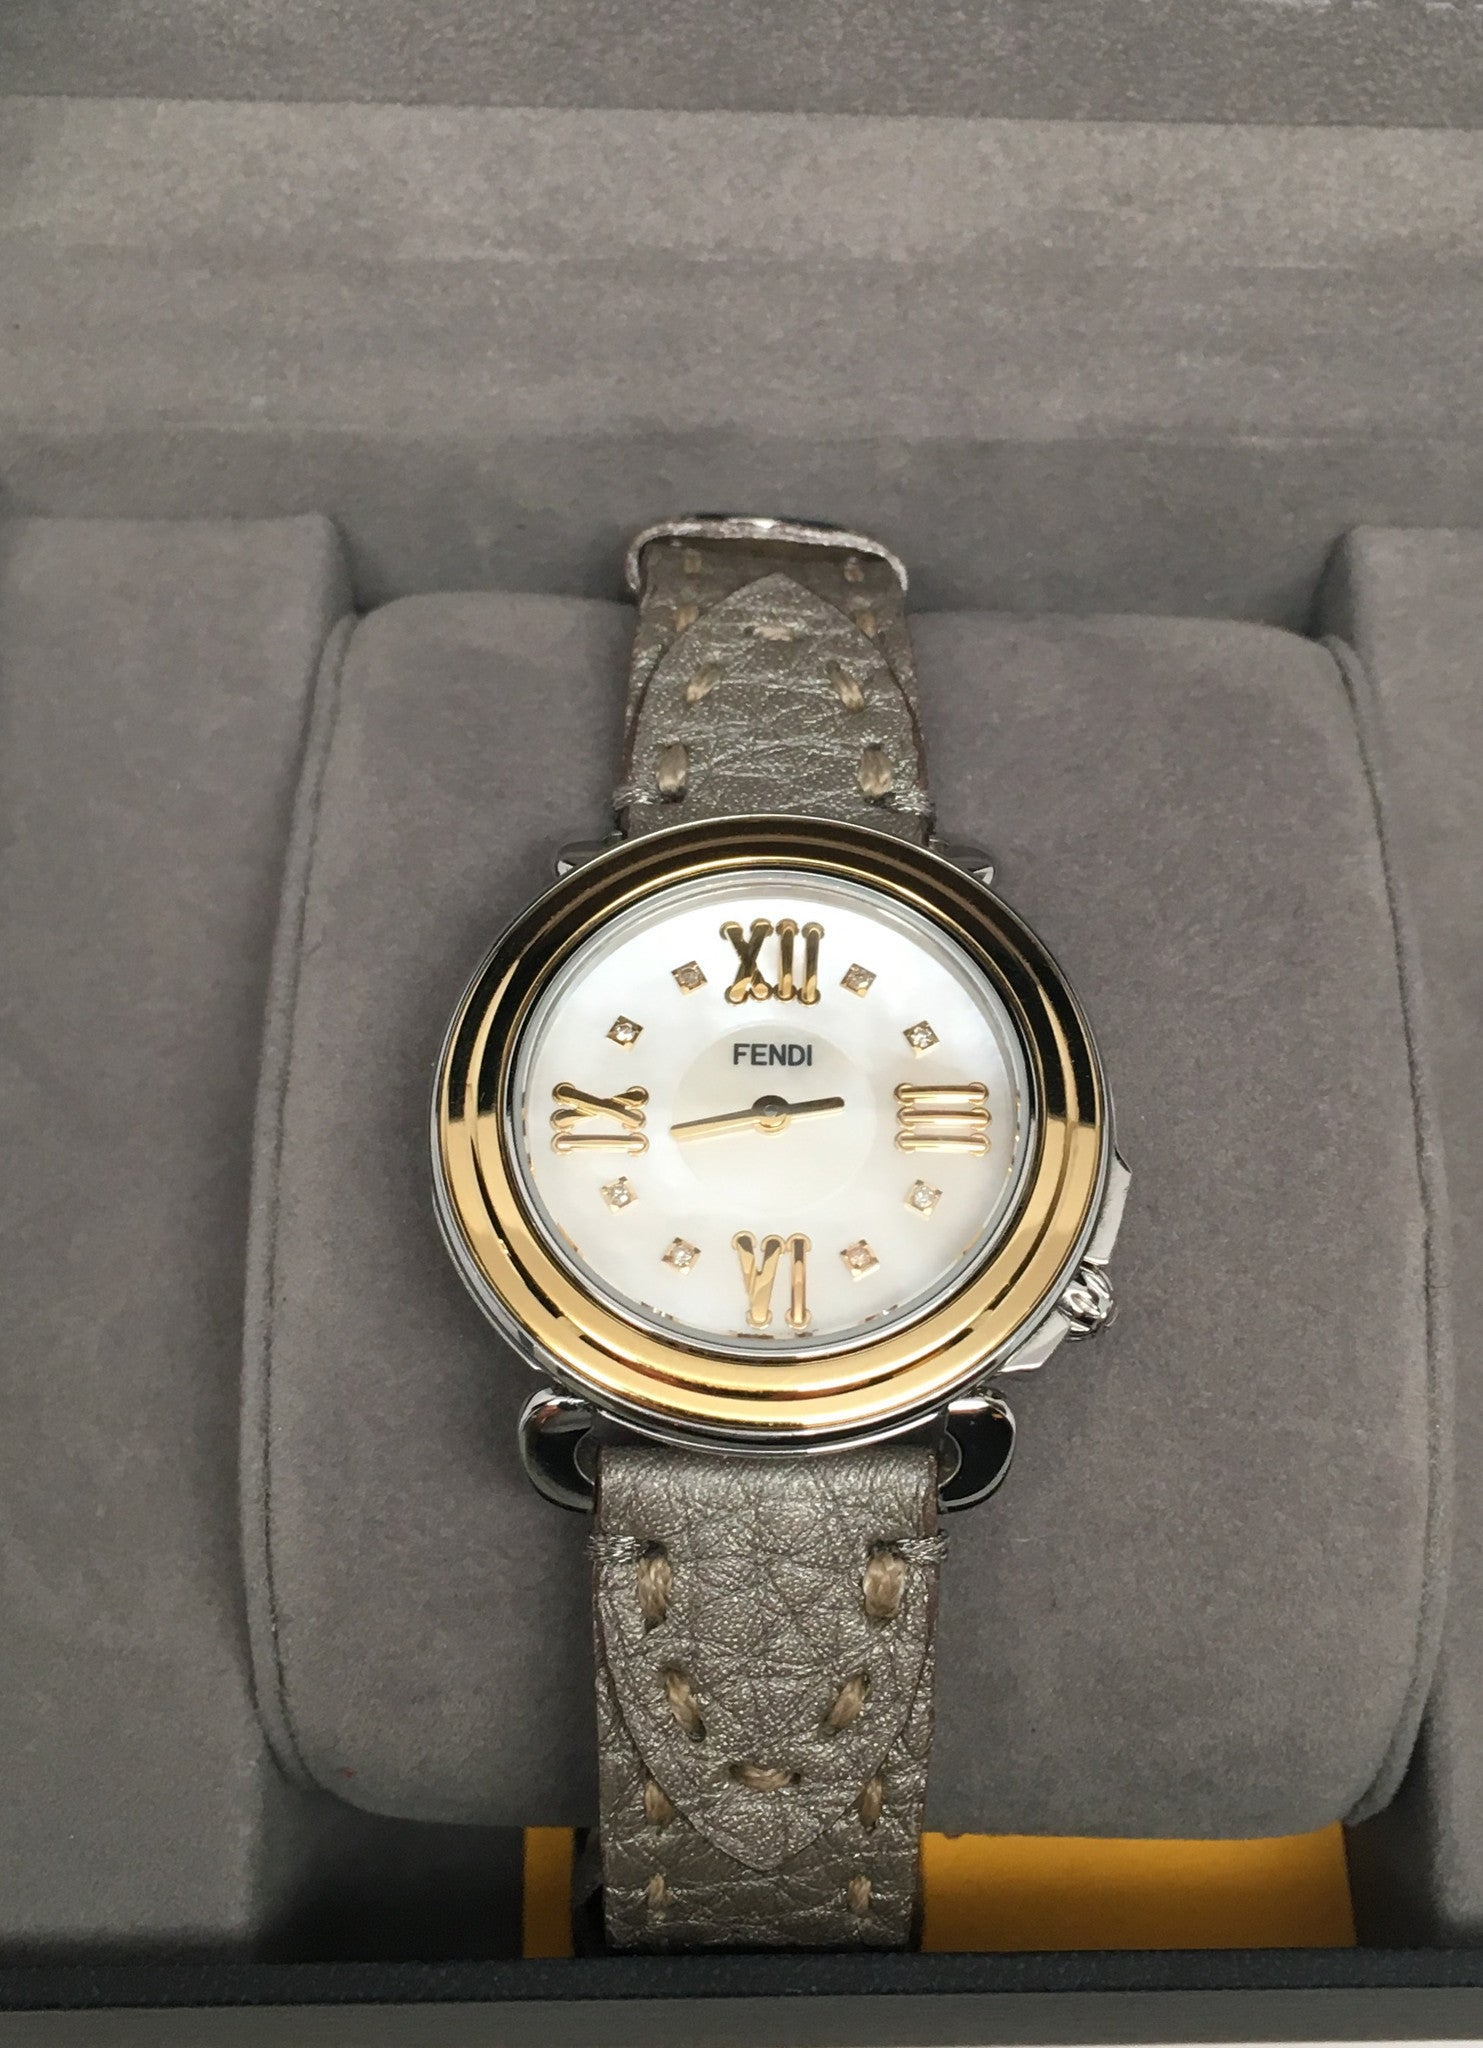 FENDI SELLERIA DIAMOND DIAL WITH BONUS EXTRA LEATHER STRAP